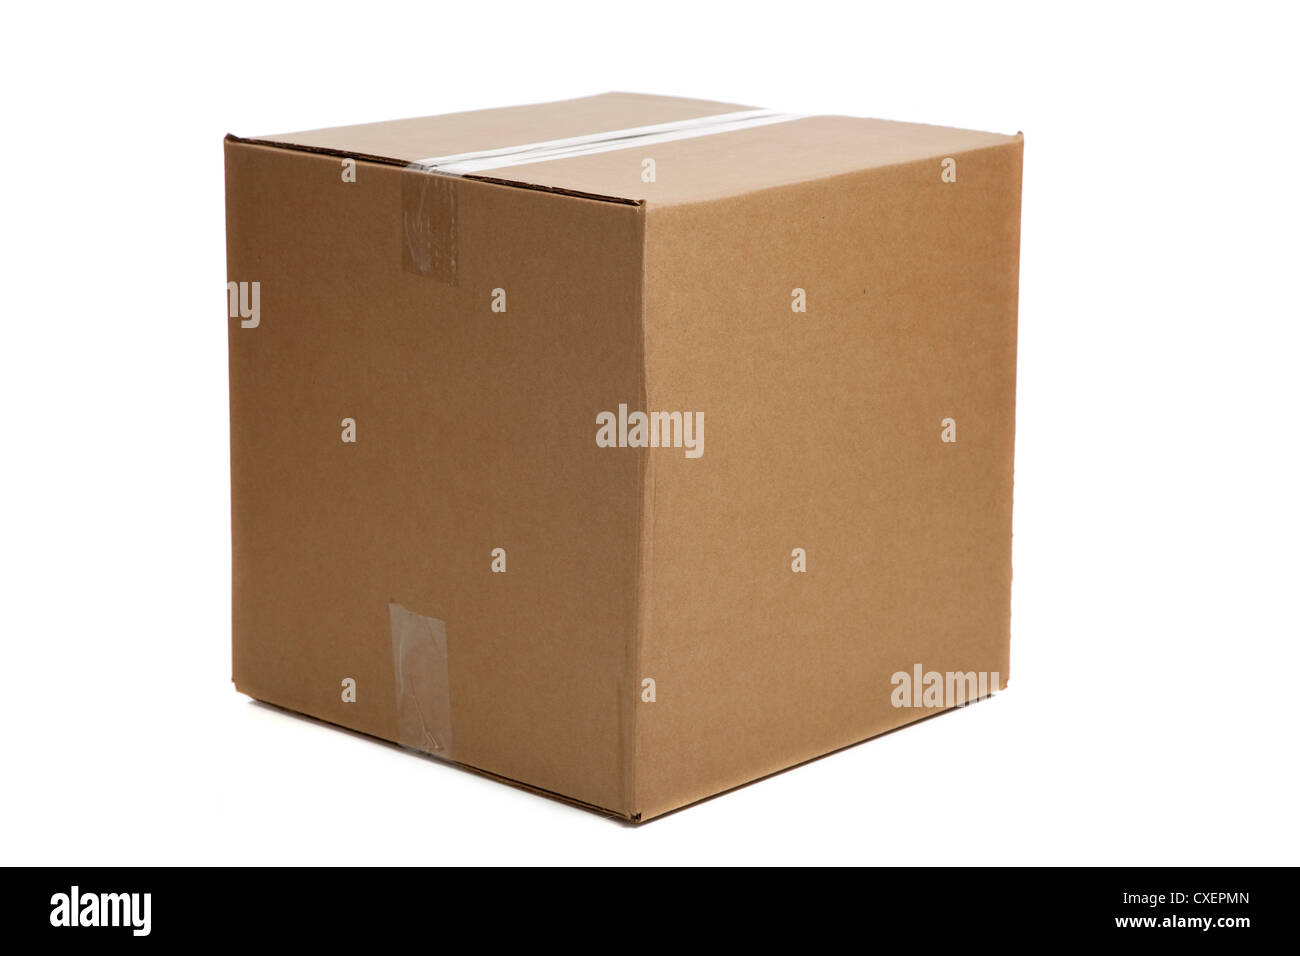 Plain brown corrugated packing box on a white background - Stock Image